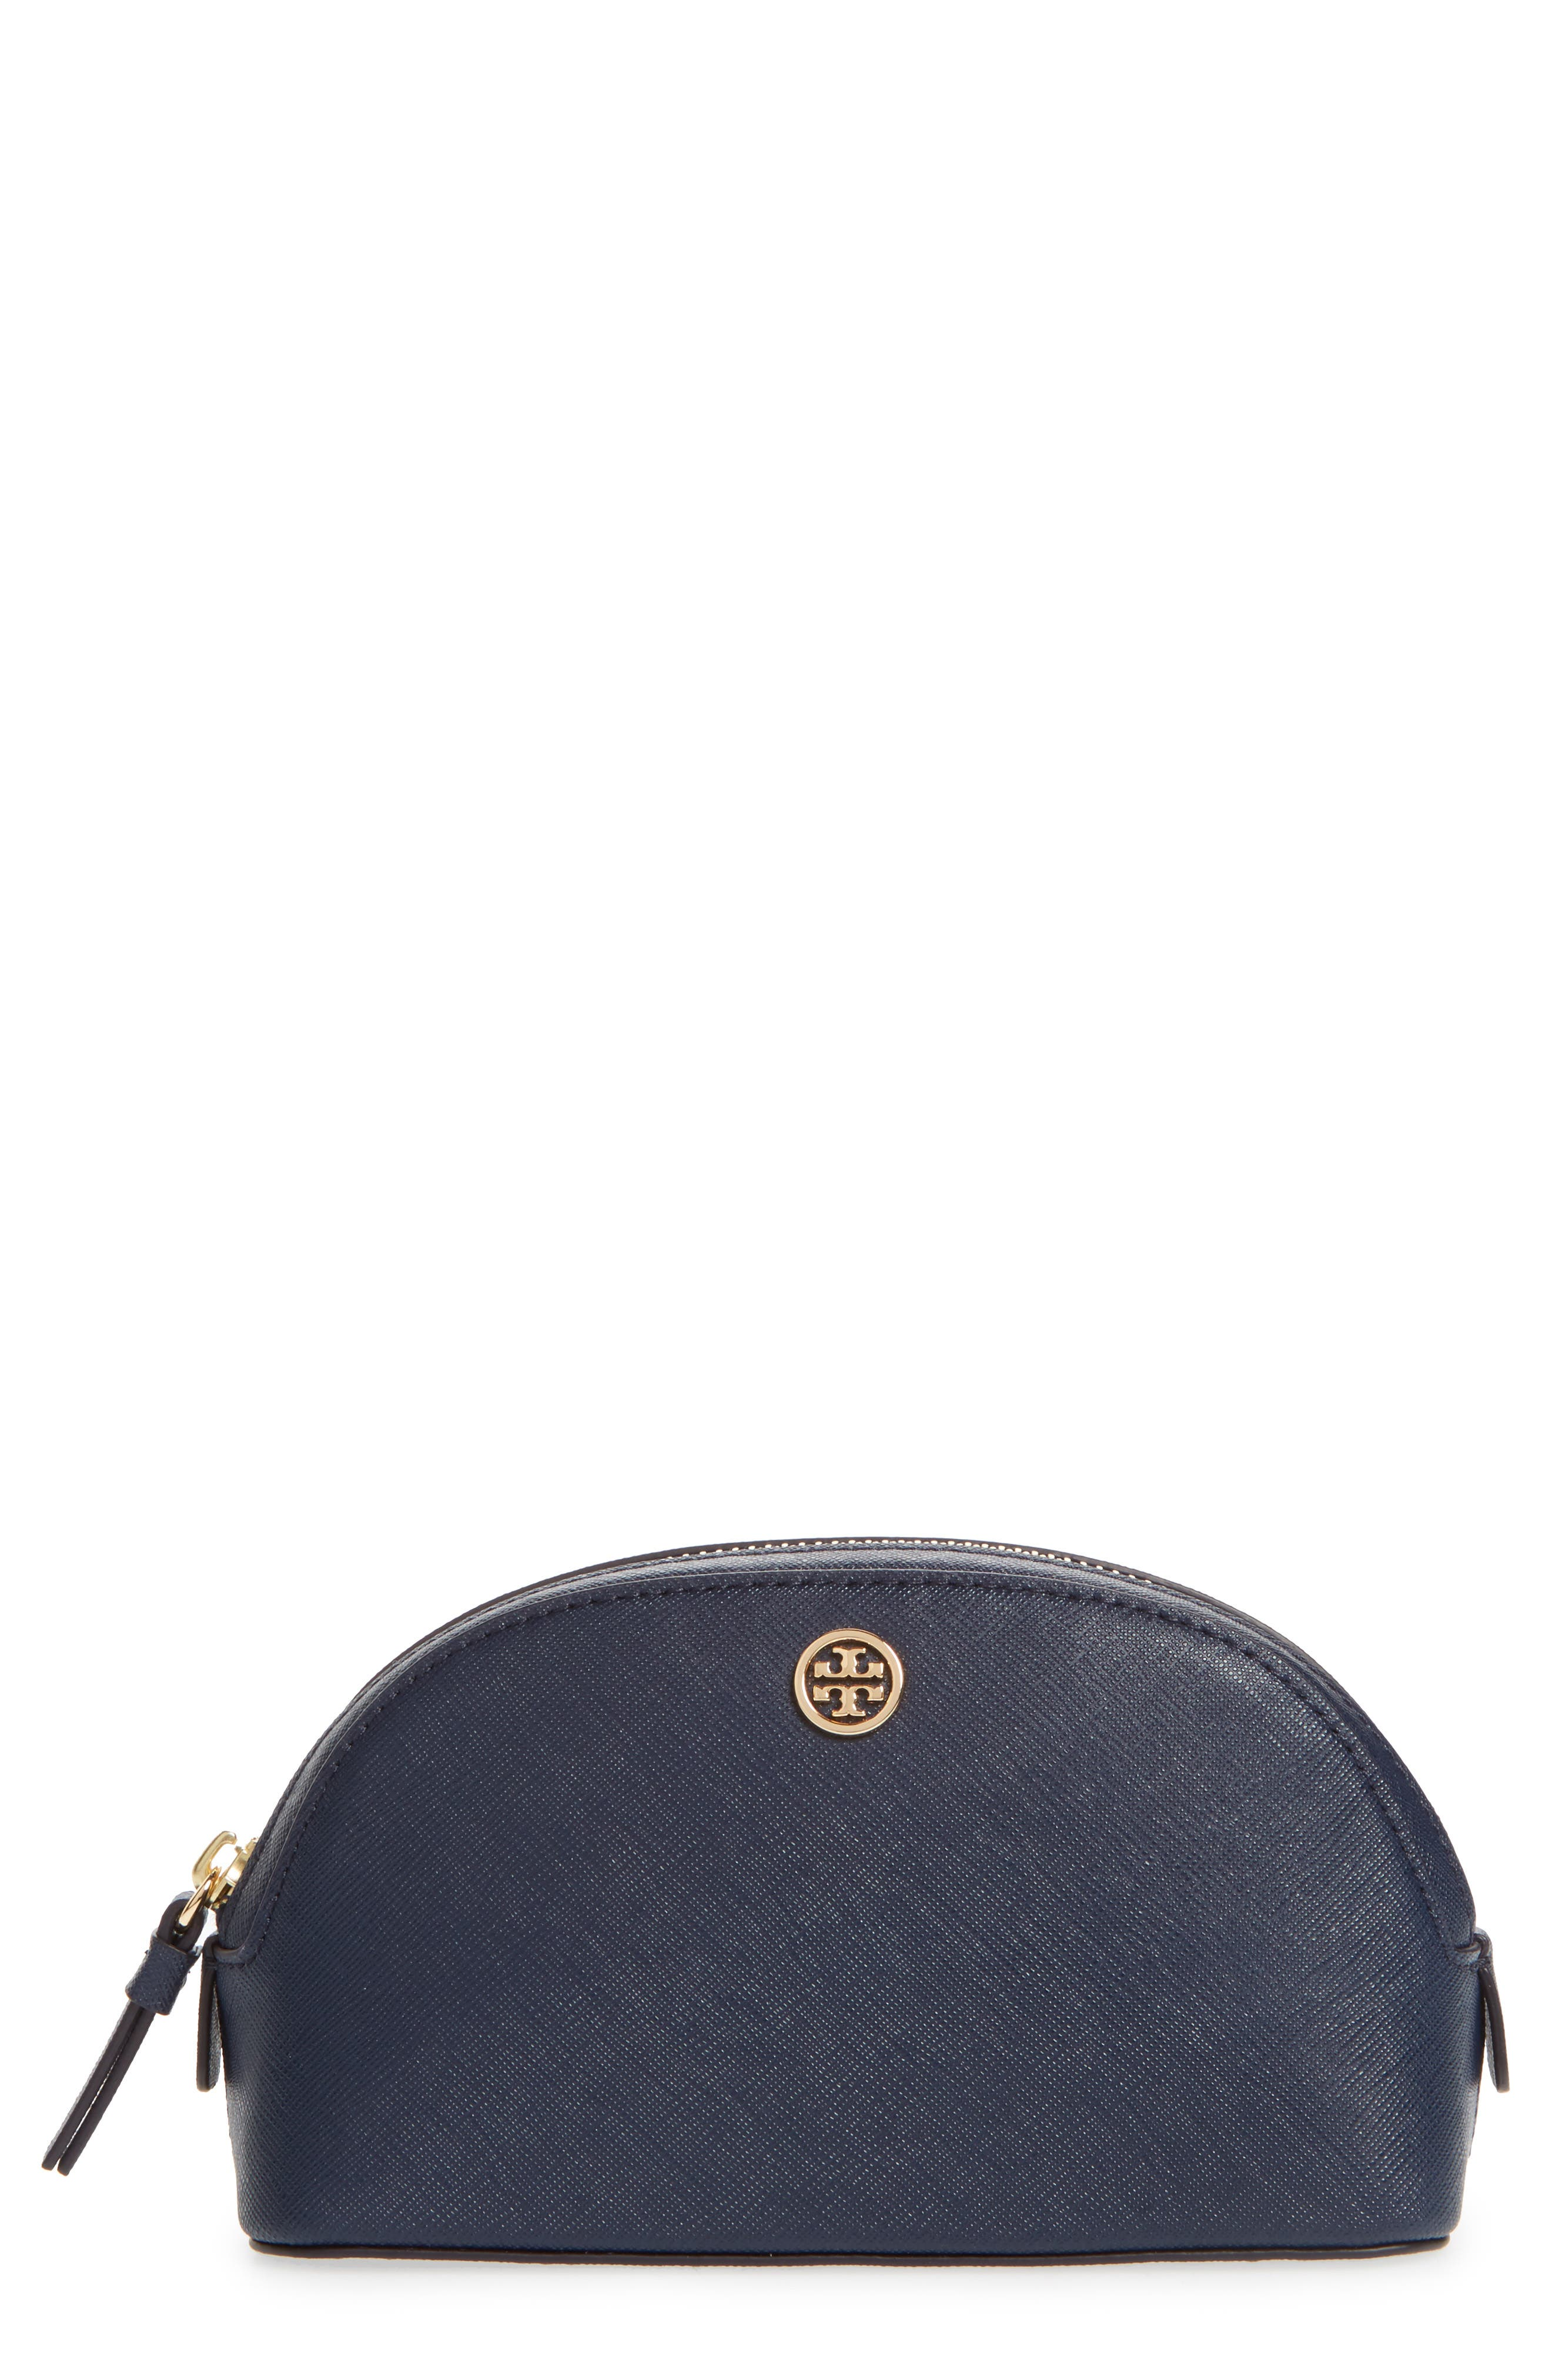 Tory Burch Robinson Small Leather Cosmetic Case